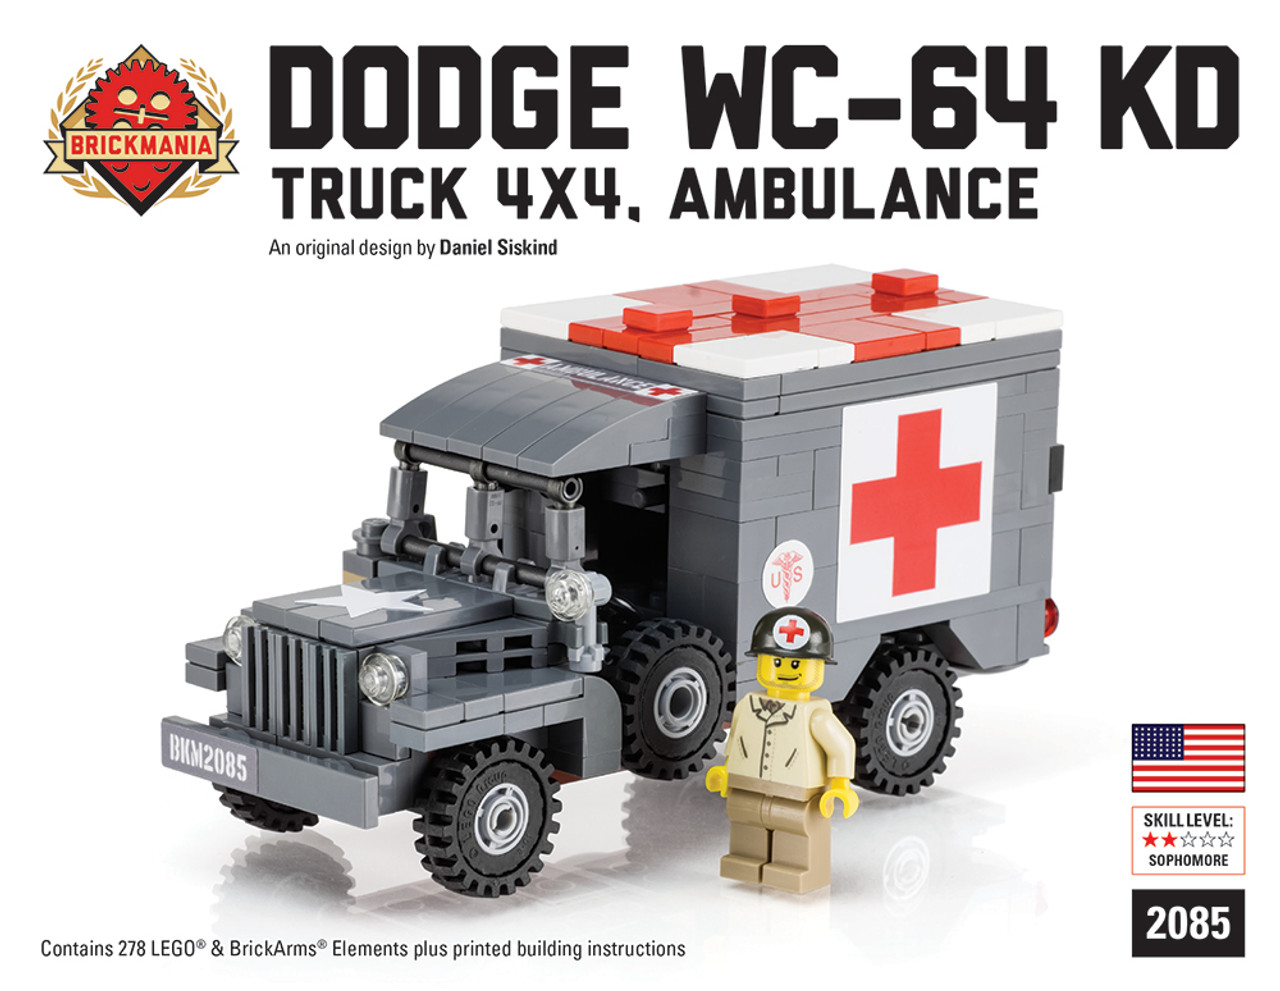 Dodge Wc 64 Kd Truck 4x4 Ambulance Brickmania Toys